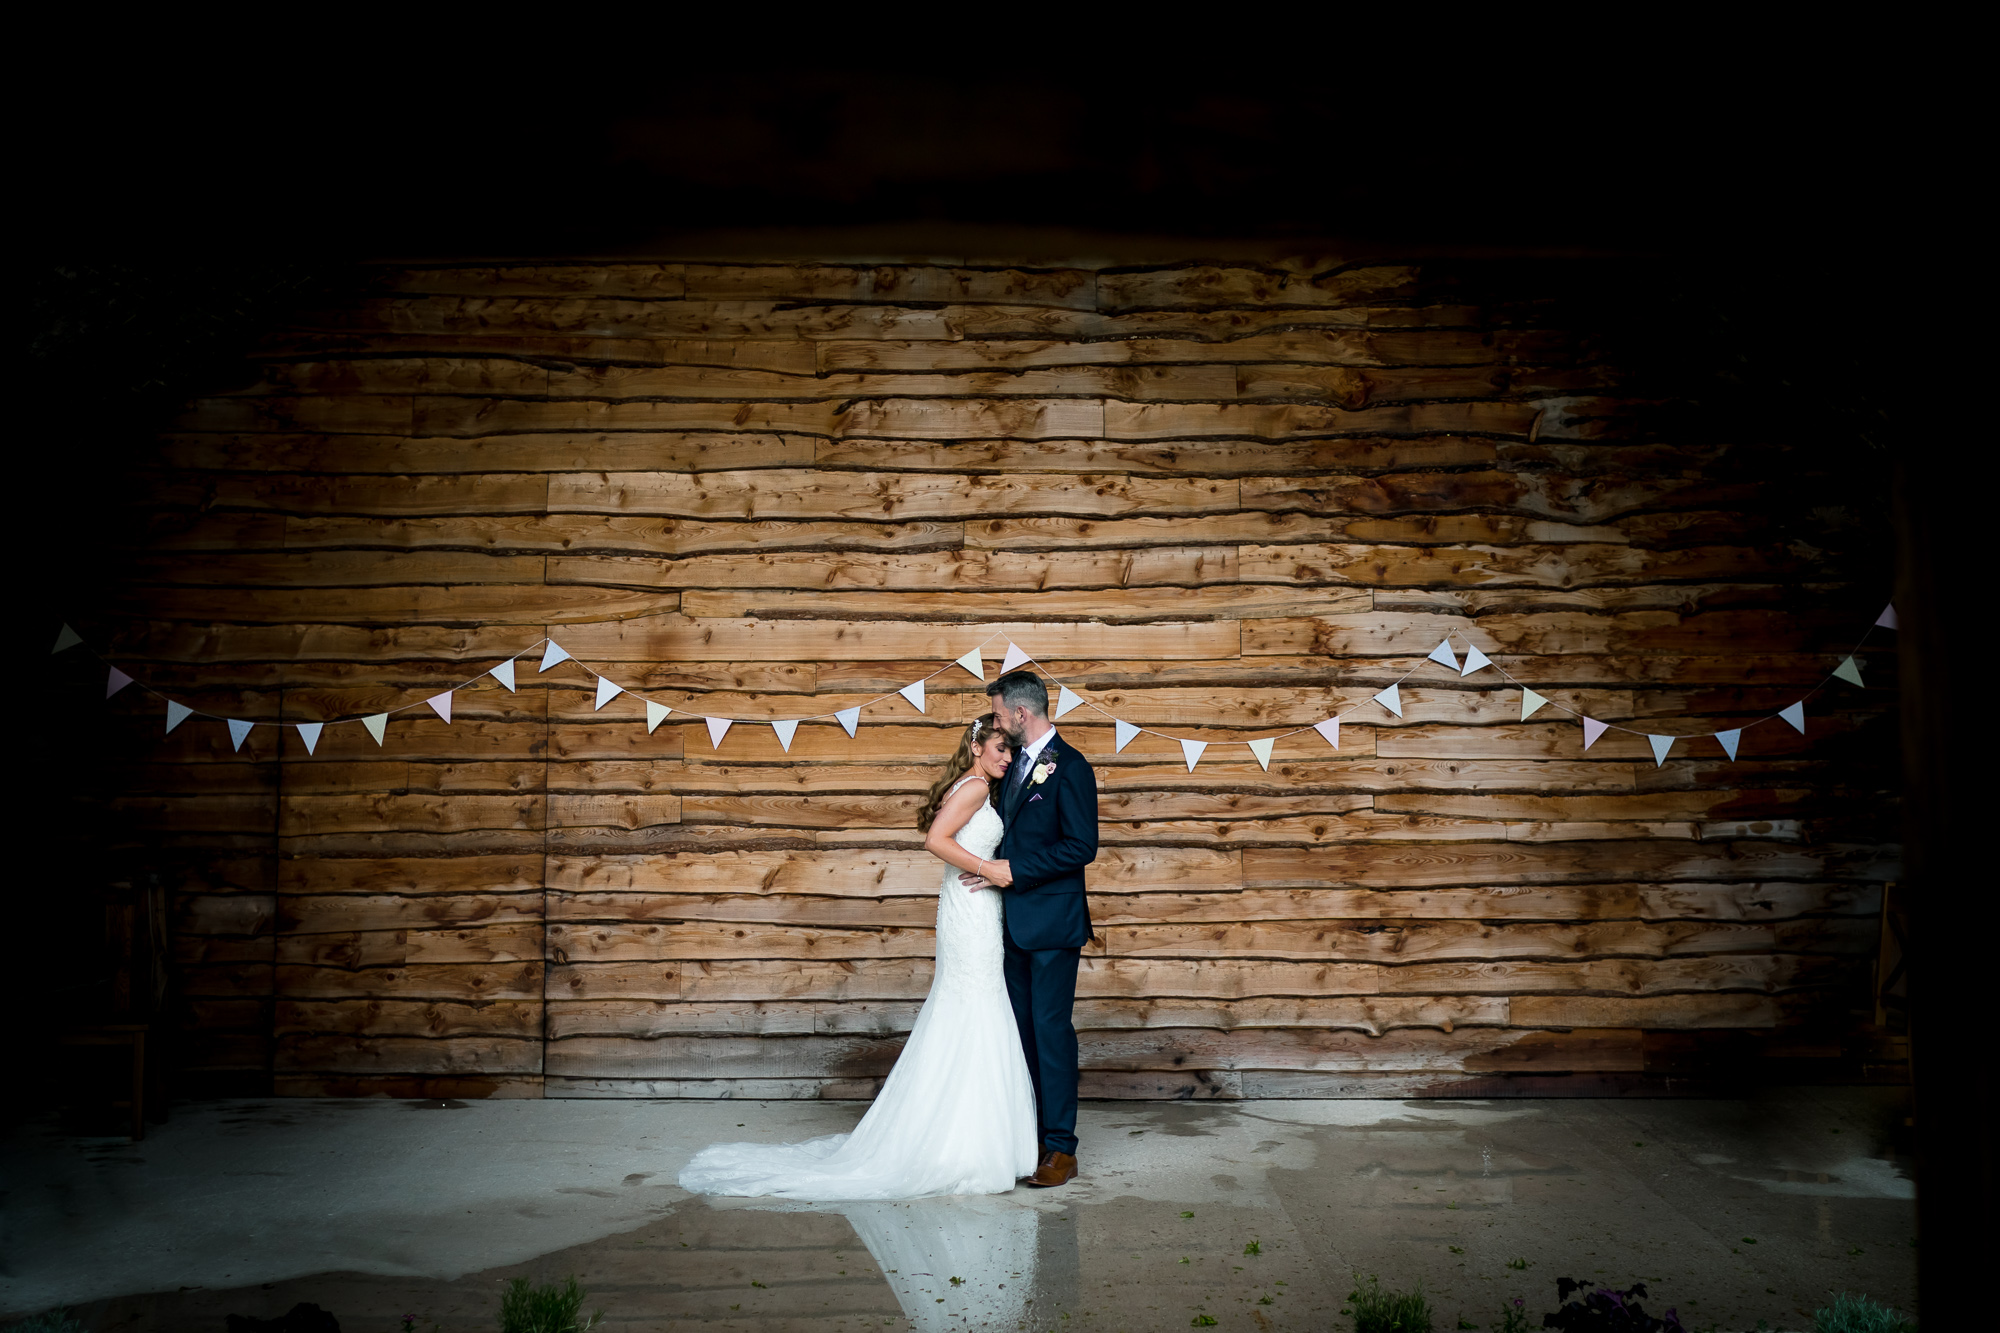 Tower Hill Barn Wedding Photographer based in north west england (3 of 7).jpg